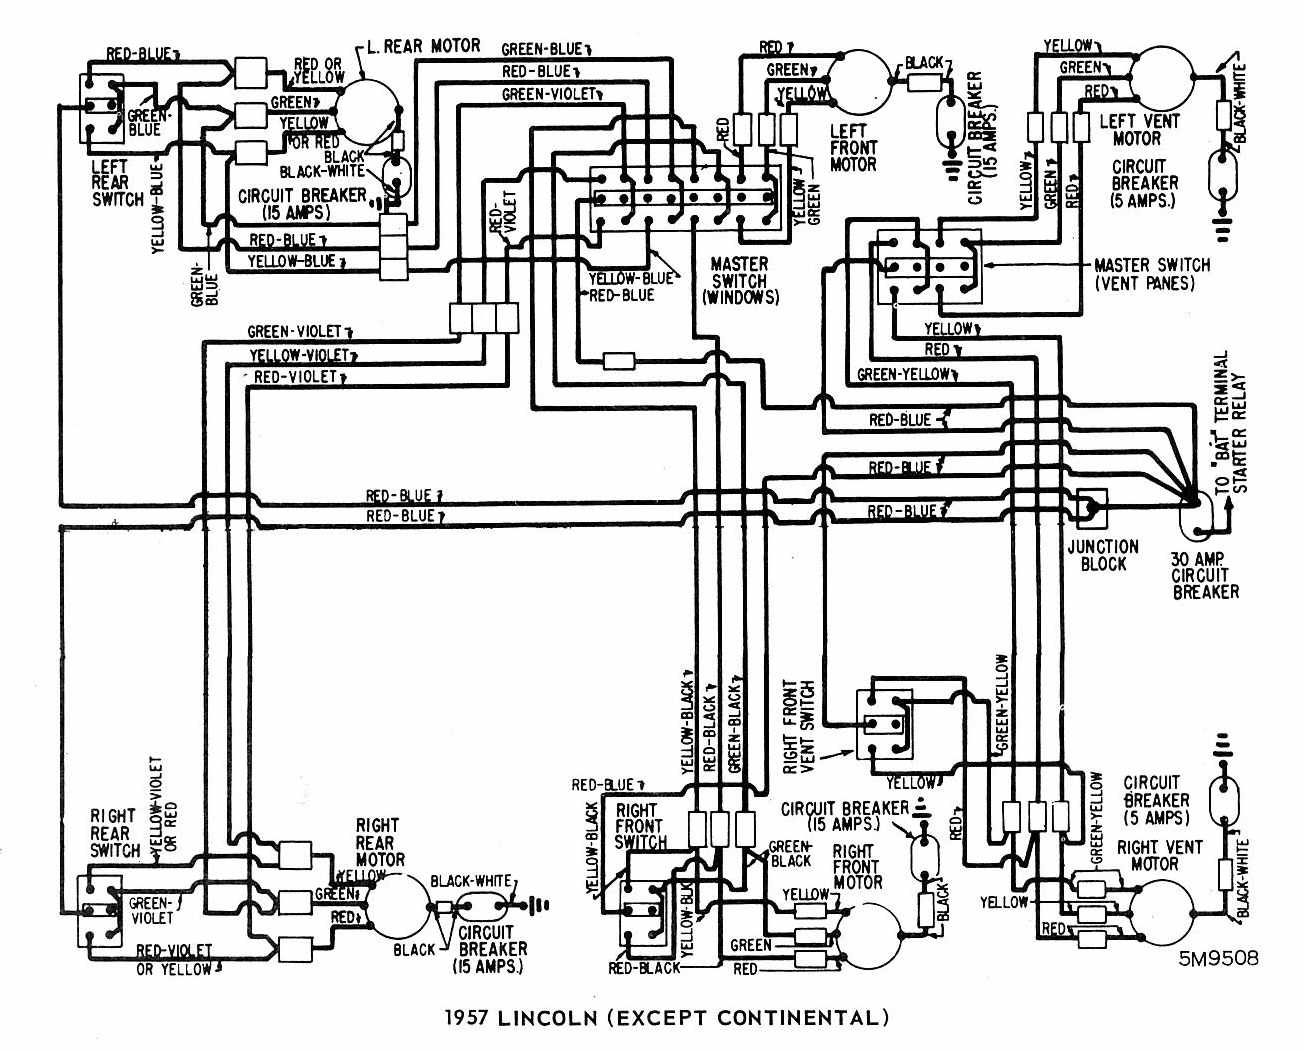 Windows Wiring Diagram Of 1957 Ford Lincoln Diagram Wire Gallery